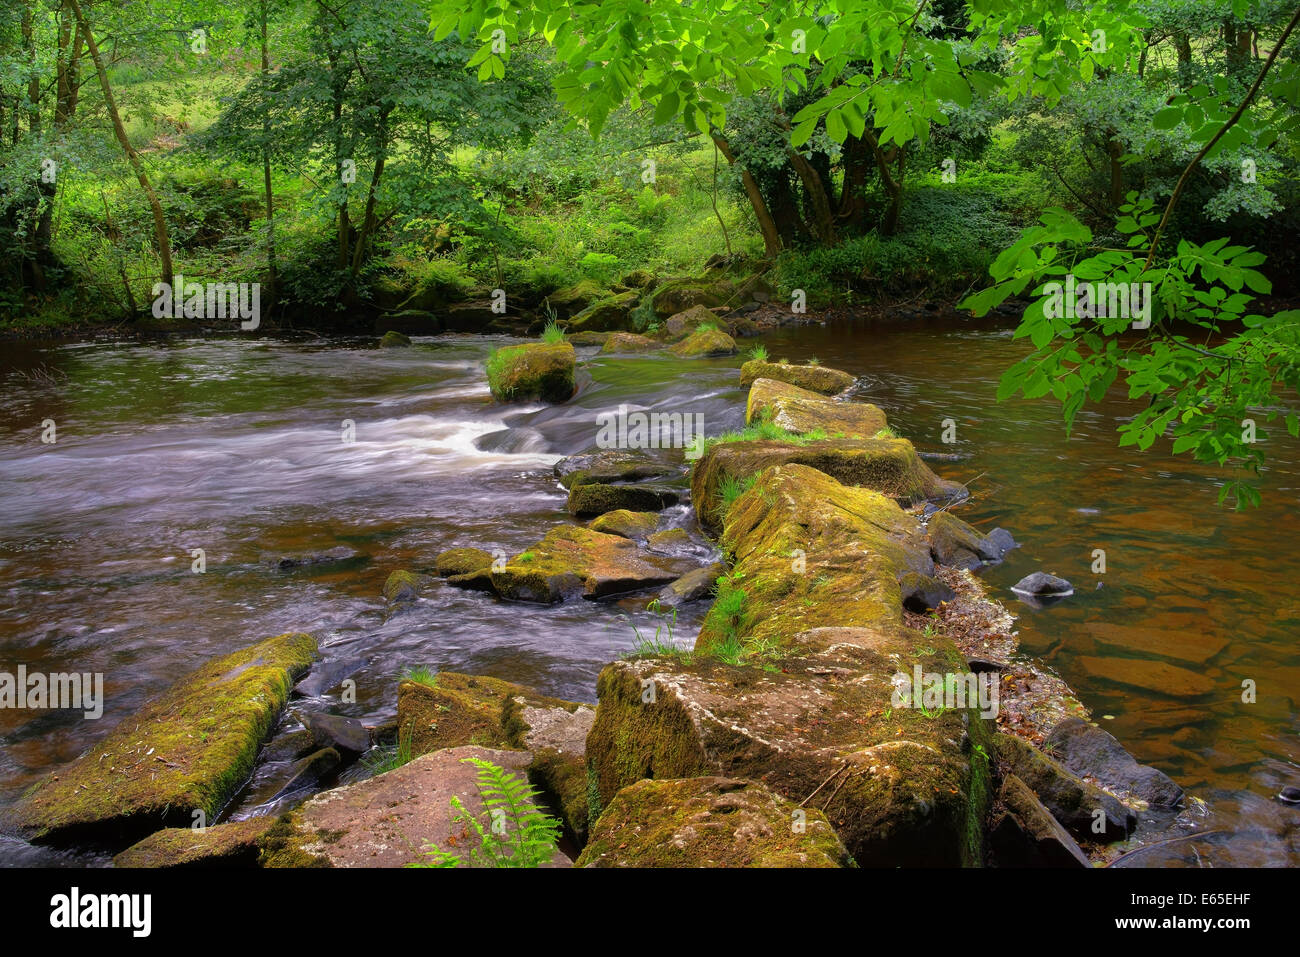 UK,Derbyshire,Peak District,River Derwent and Stepping Stones near Hathersage - Stock Image